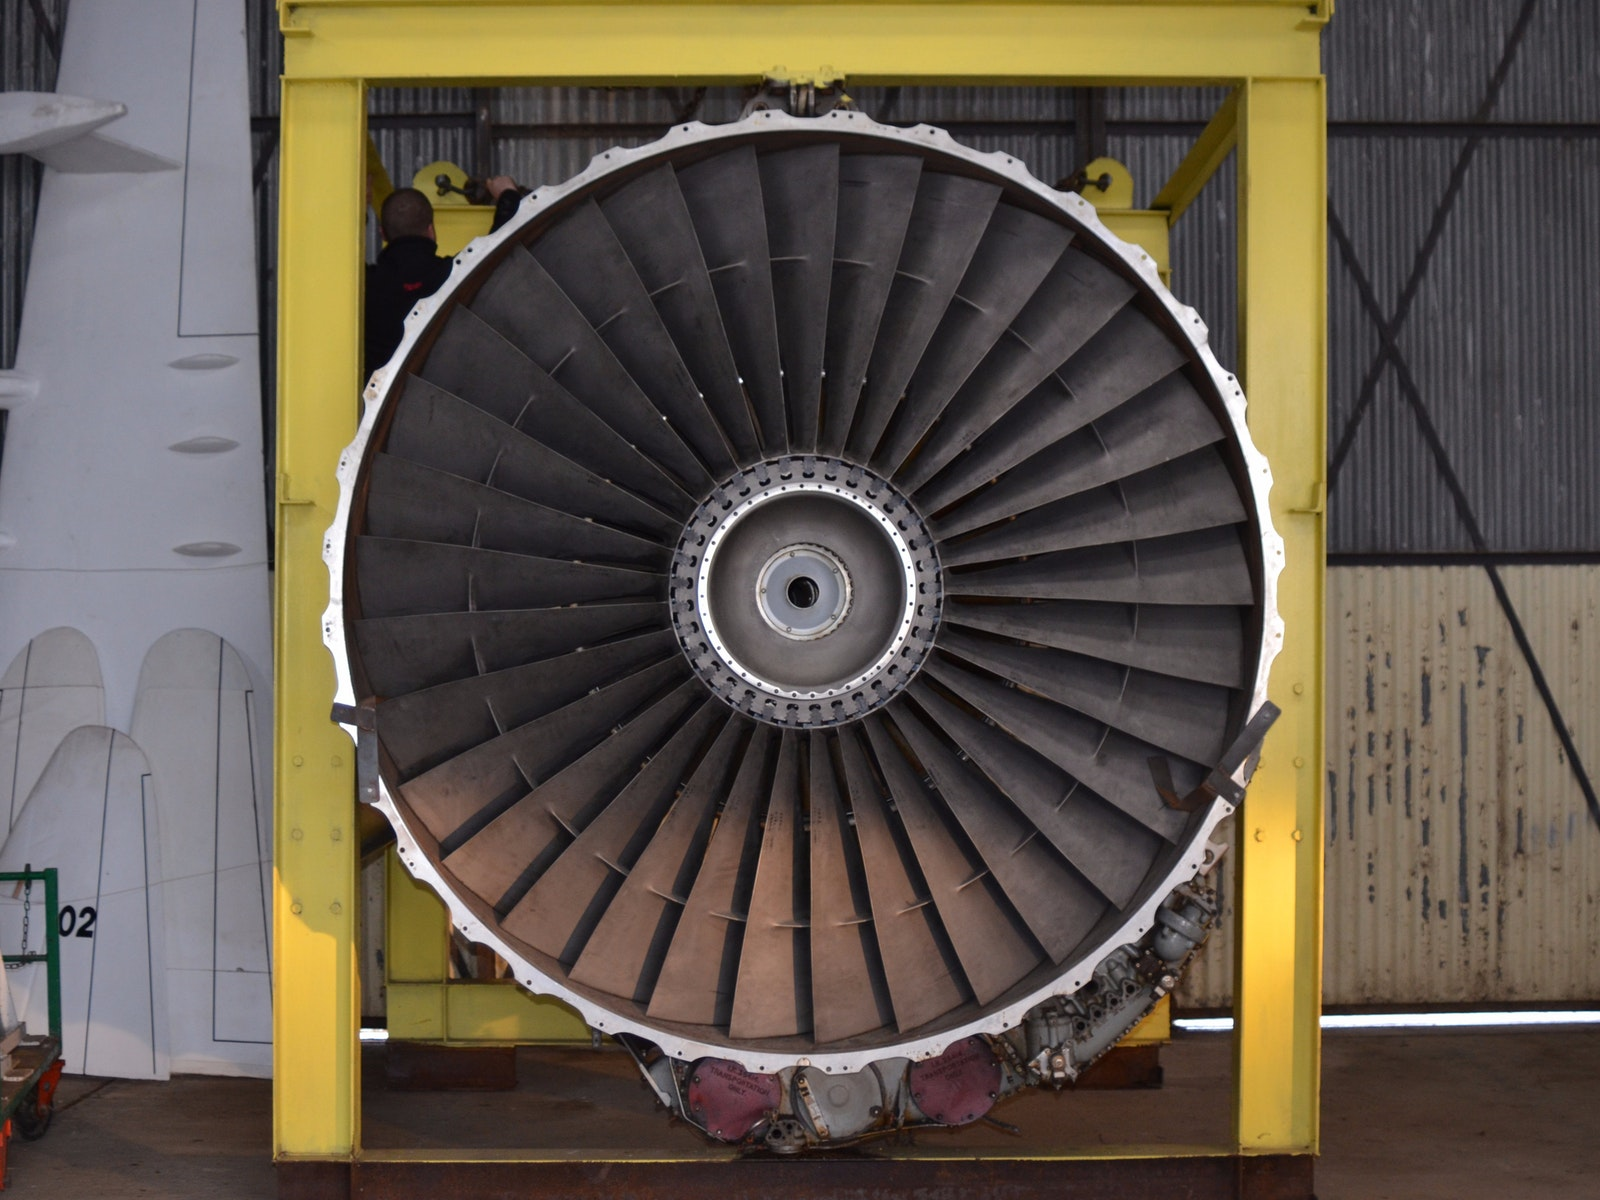 747 engine located in hangar 8